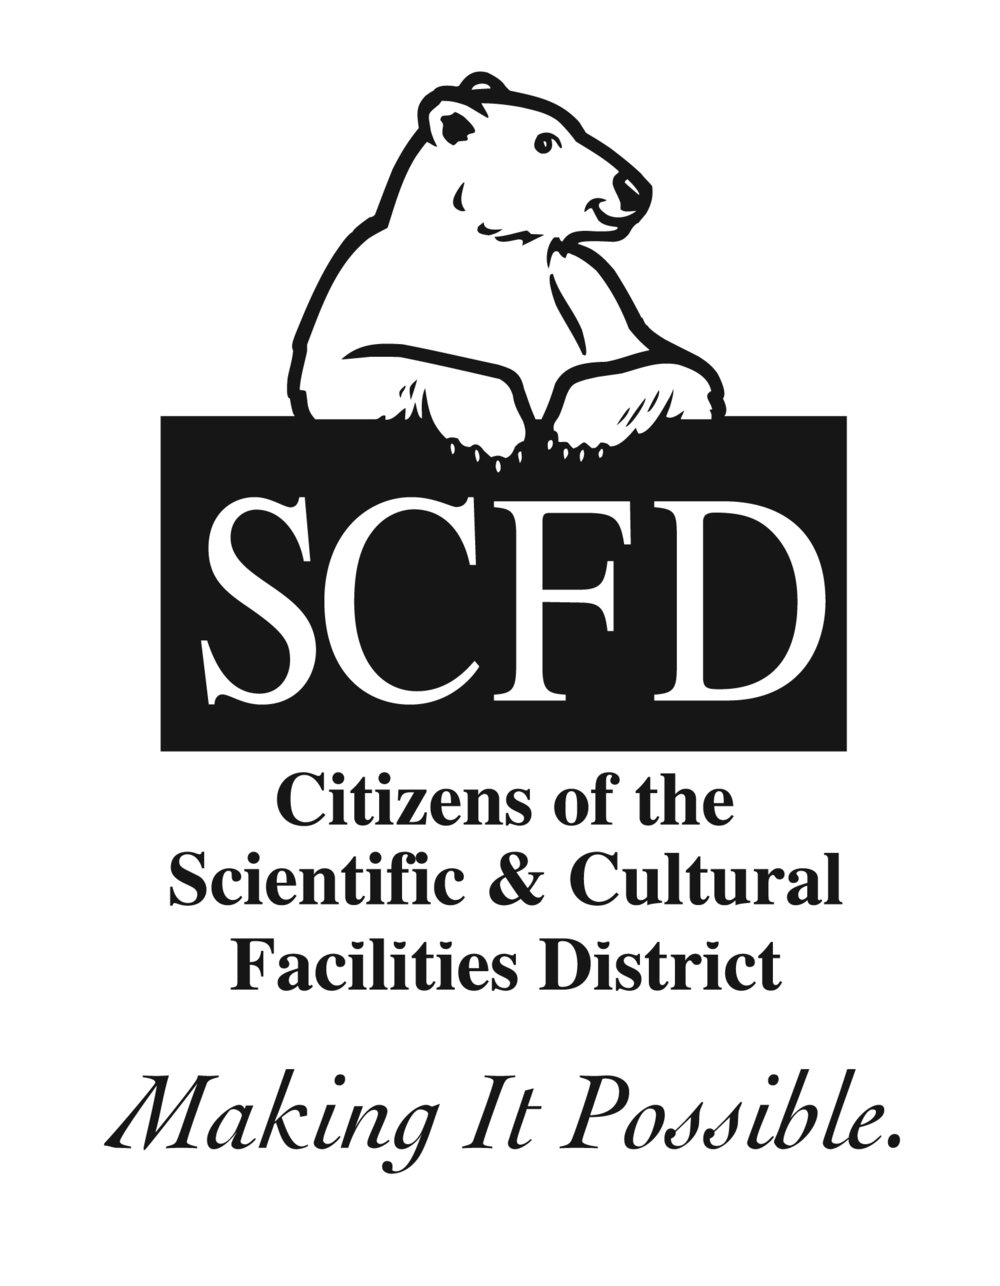 SCFD-logo_Citizen-Tag.jpg